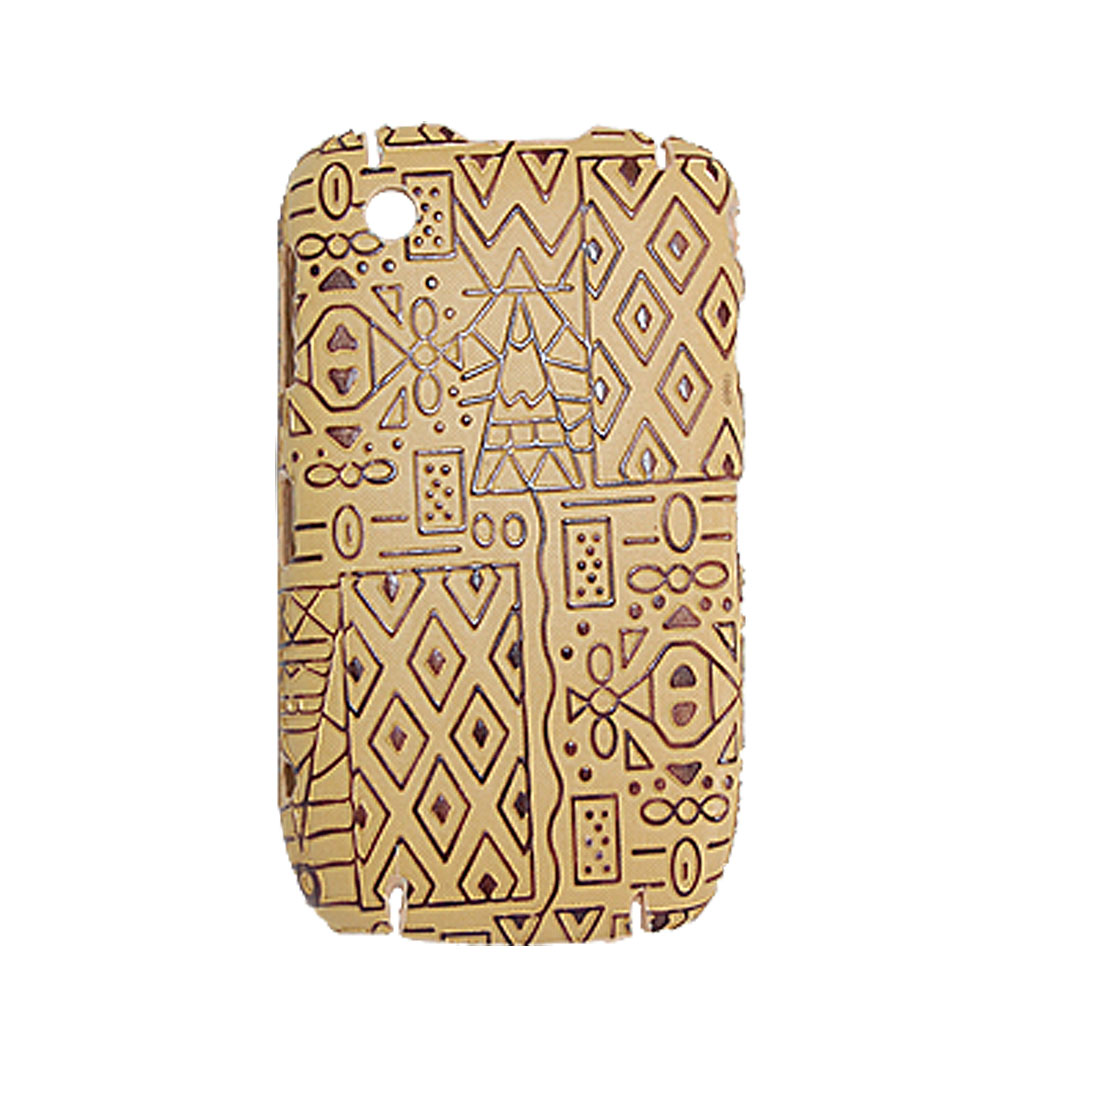 Texture Printed Plastic Protector Case for Blackberry 8520